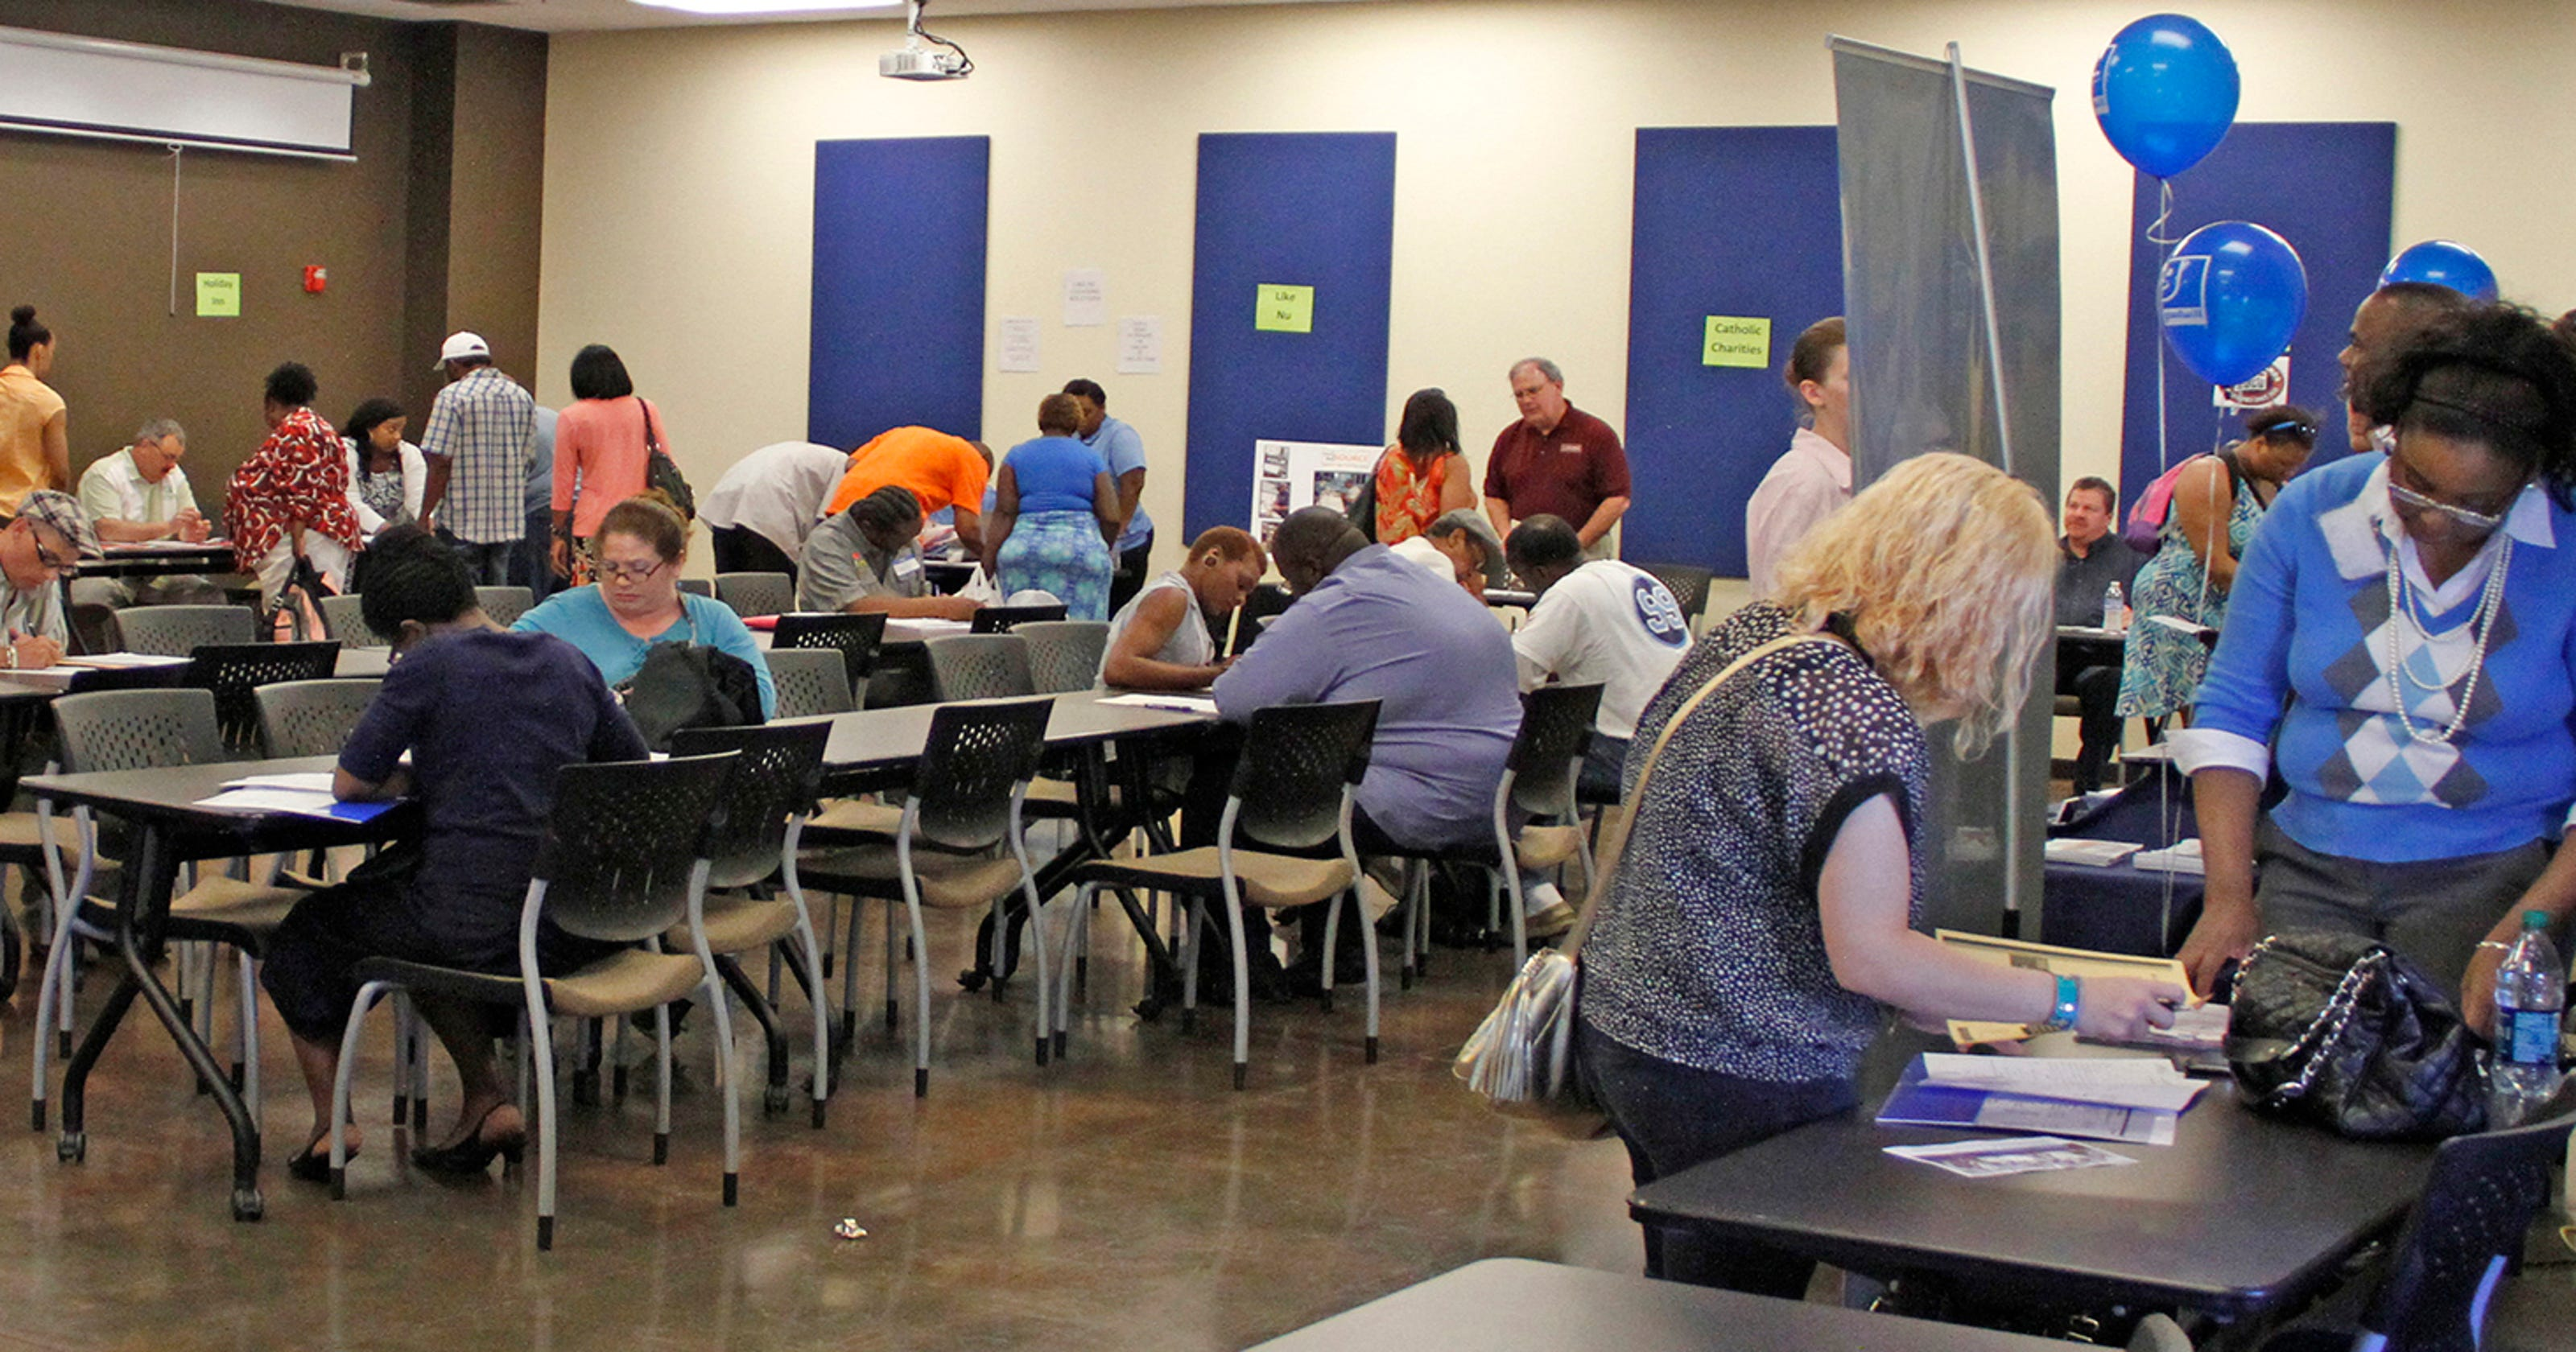 Goodwill Job Fair In Mt Juliet To Hire 225 Positions